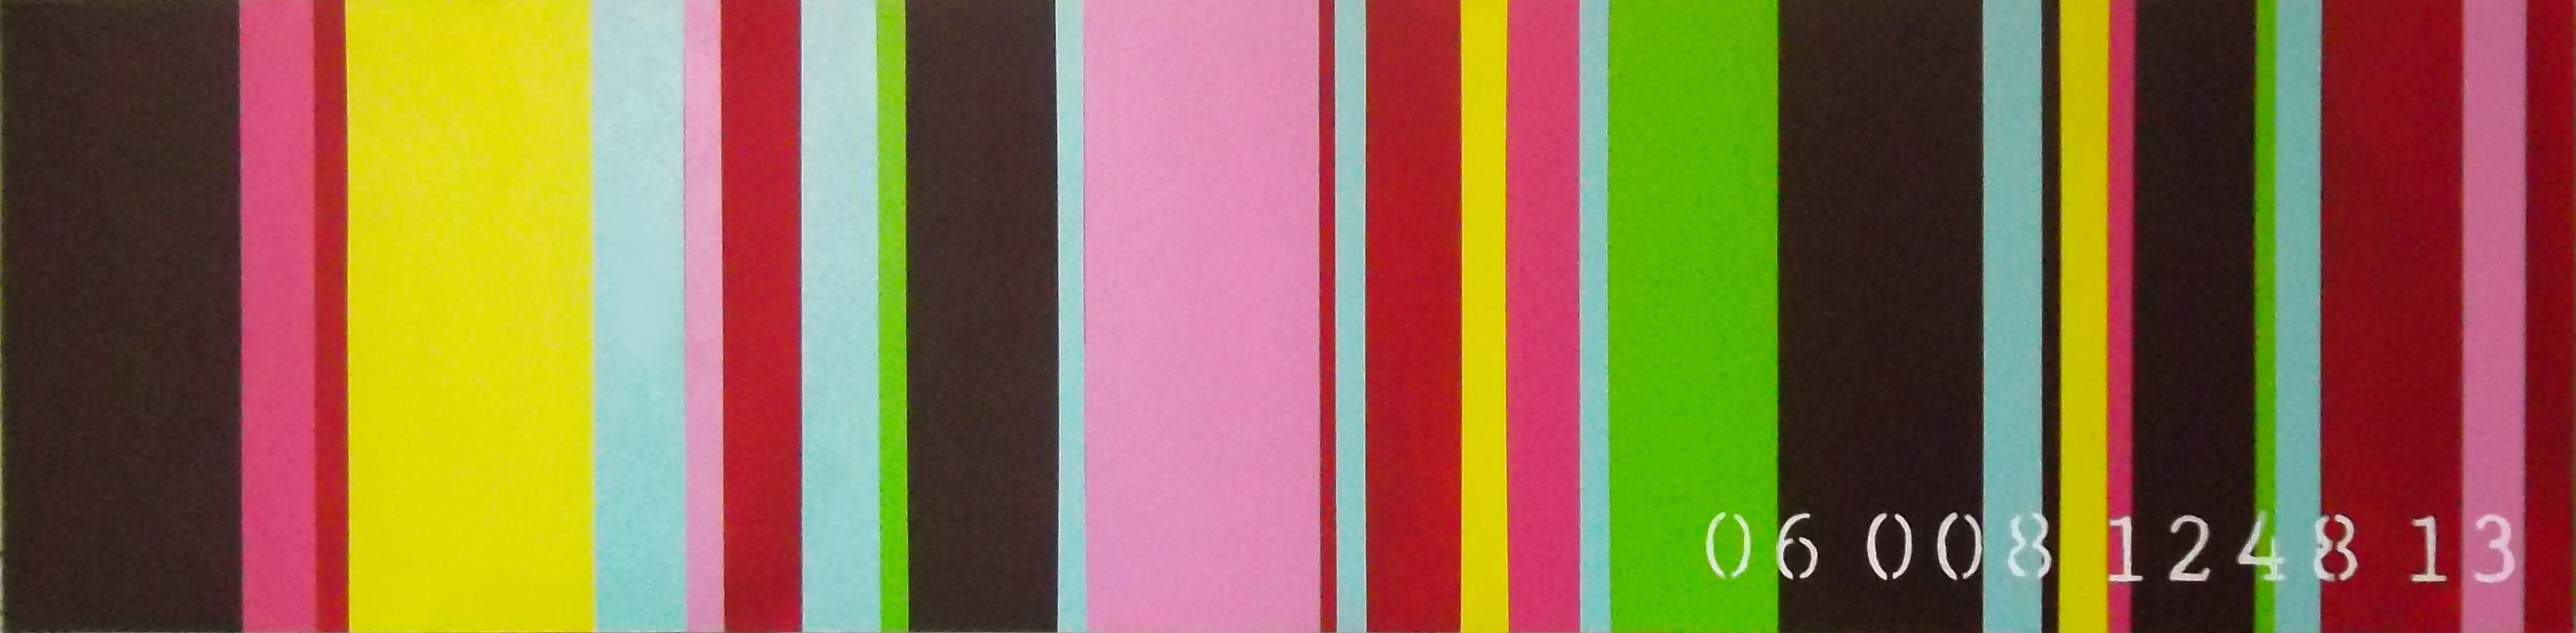 commodity of colour 06 008 1248 13 8th in series 12 x 48 2013 janet bright